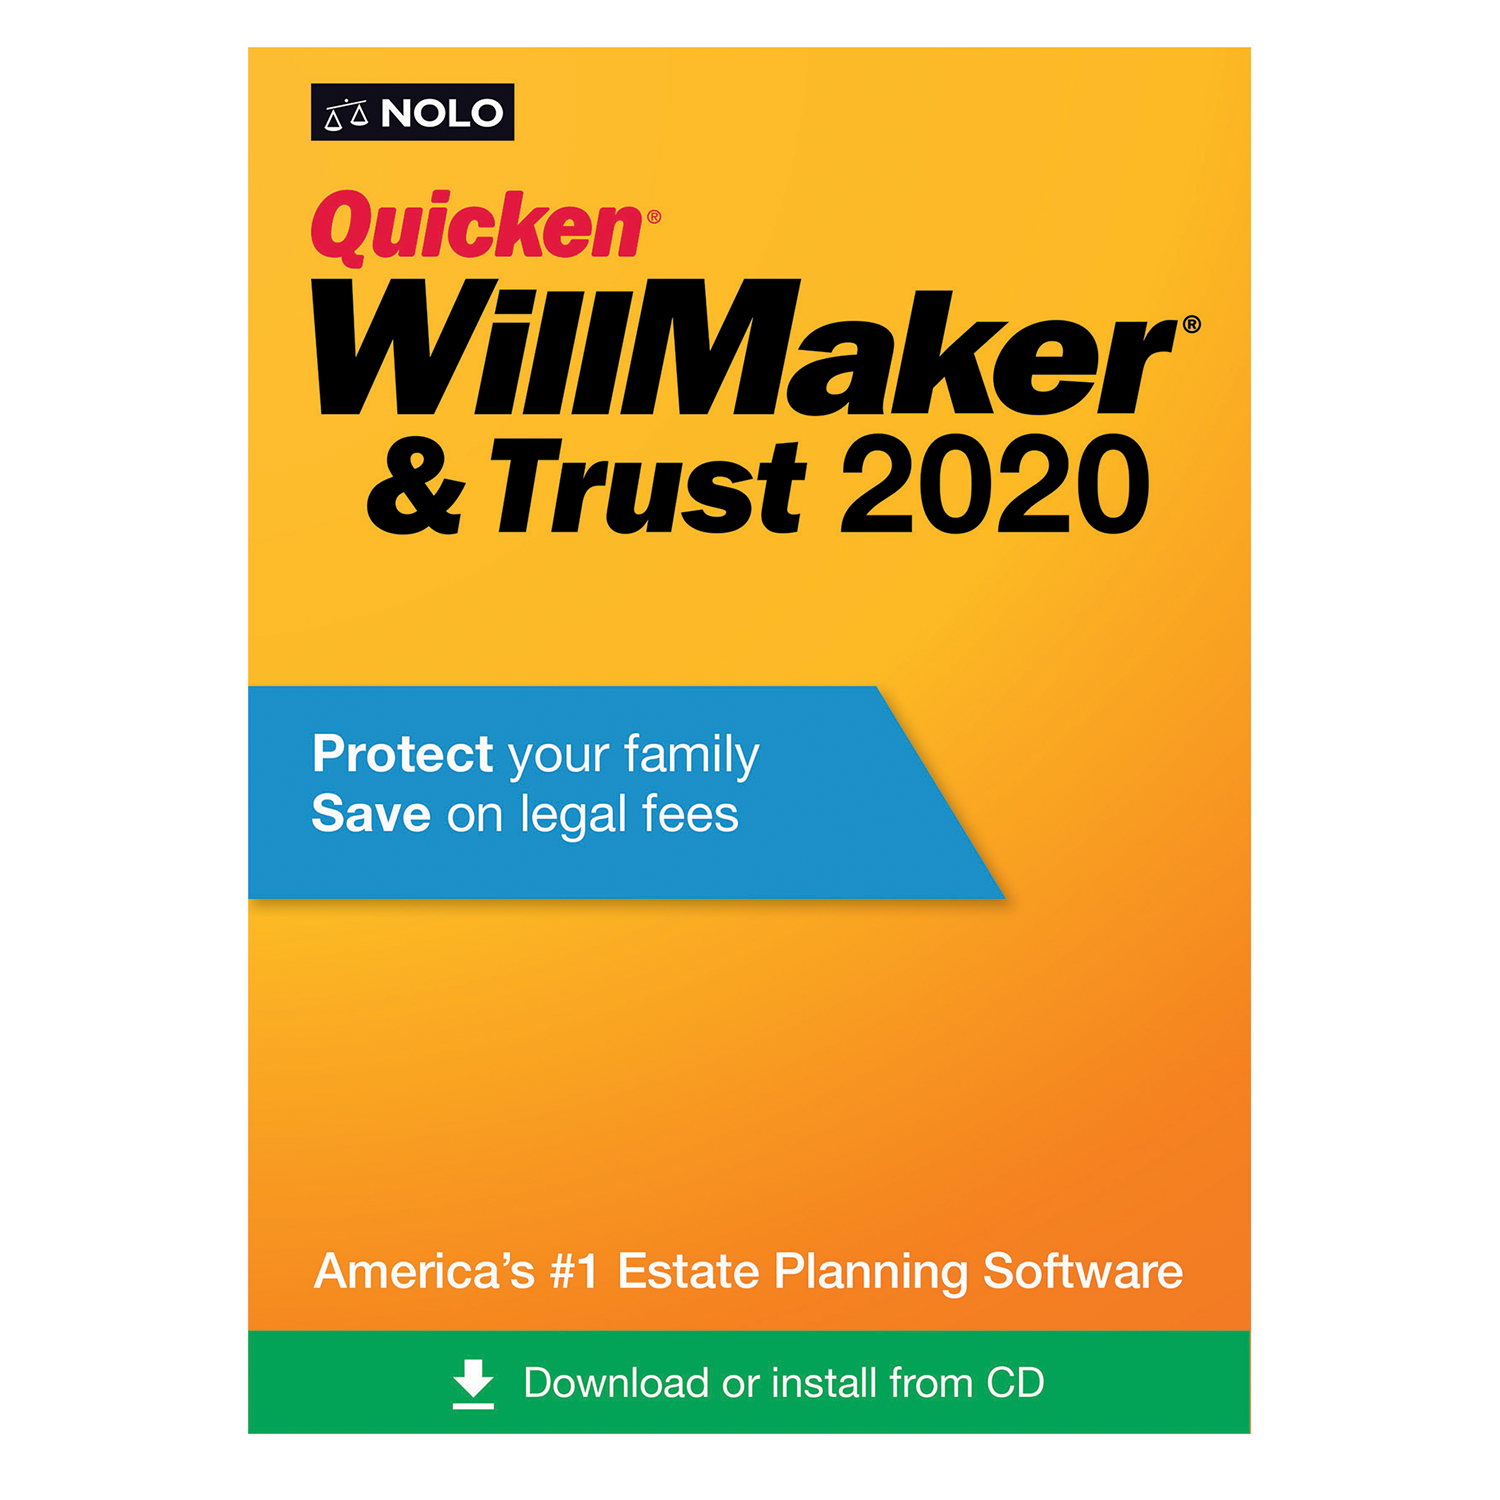 Nolo Quicken WillMaker & Trust (2020) - #OAE4874